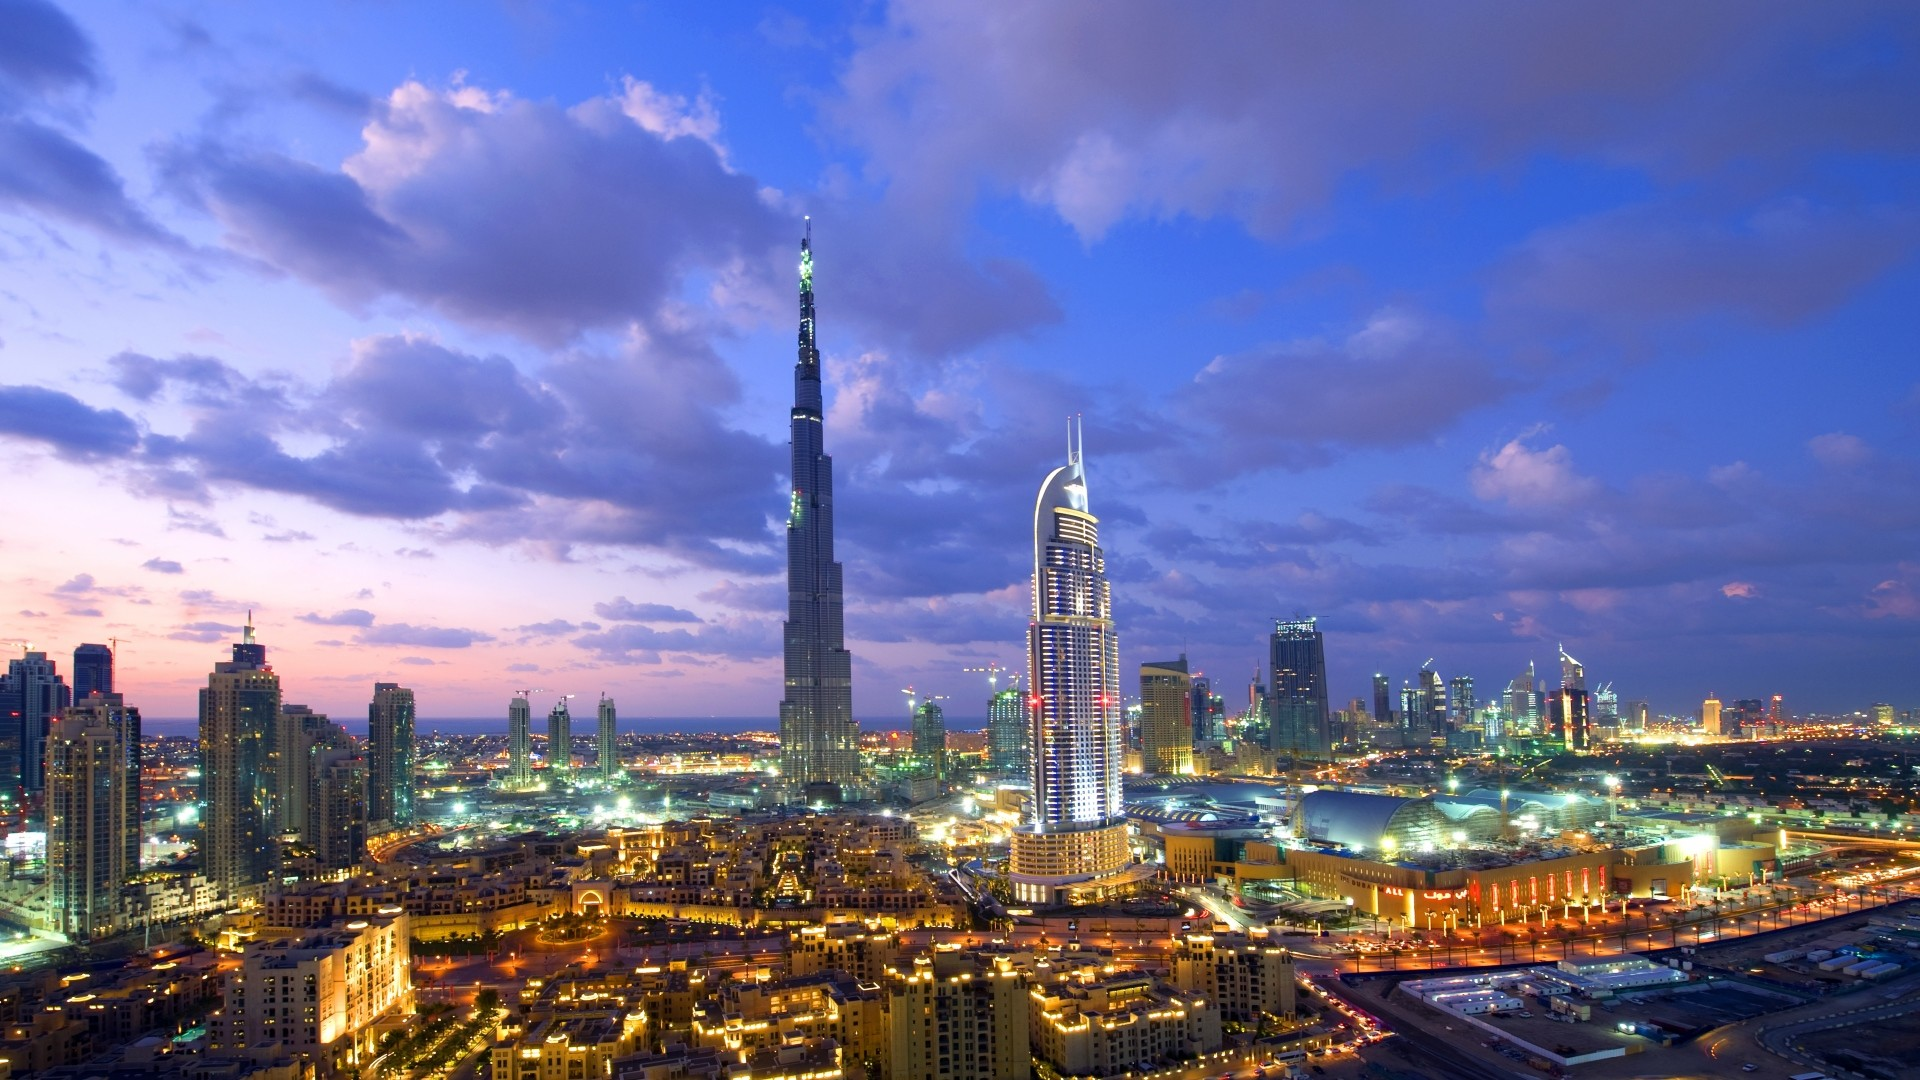 1920x1080 Full HD 1080p Dubai Wallpapers HD, Desktop Backgrounds